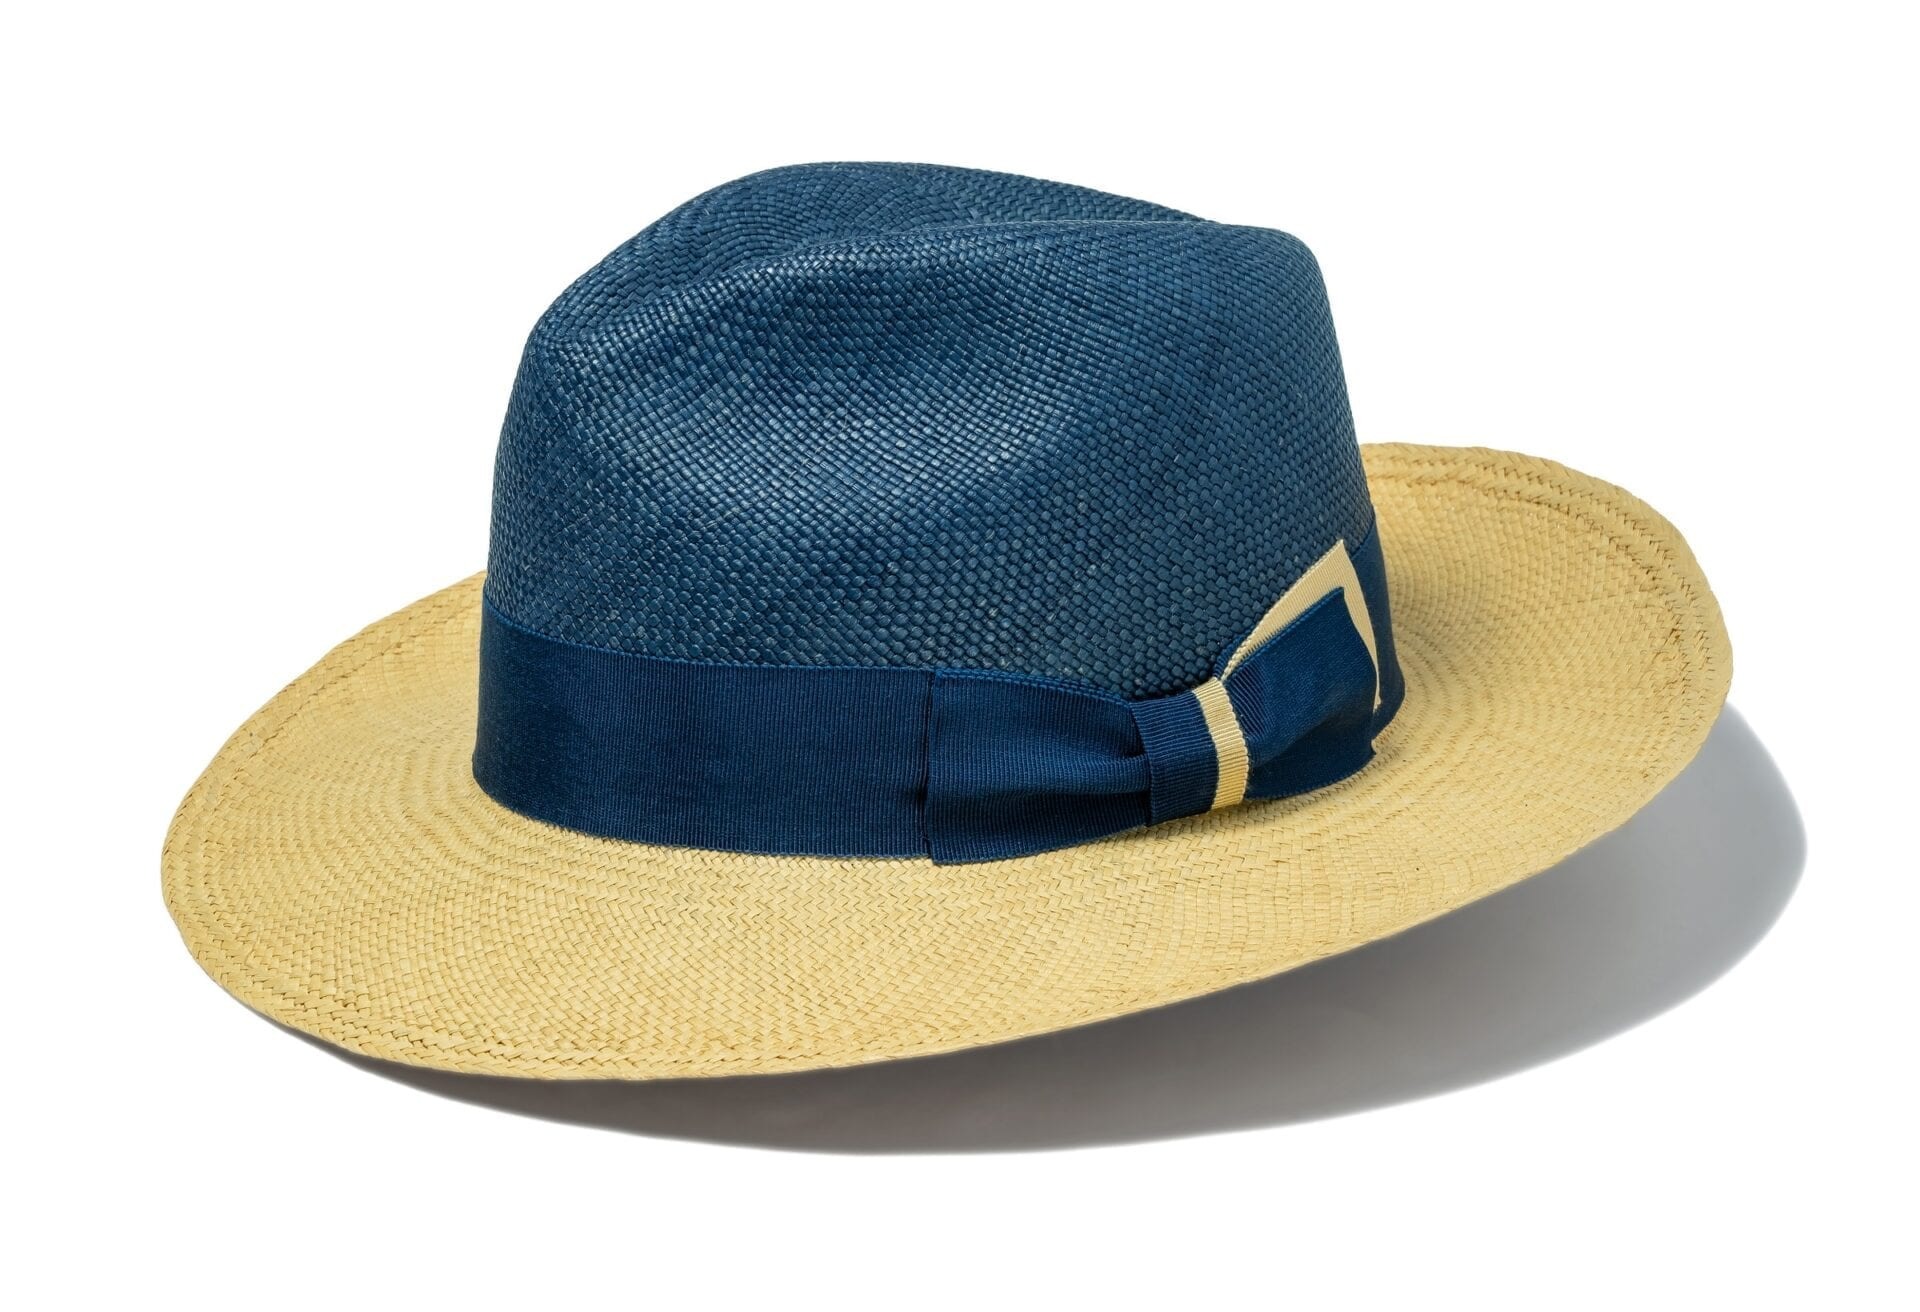 Versatile_midnight_blue_and_sandy_panama_hat